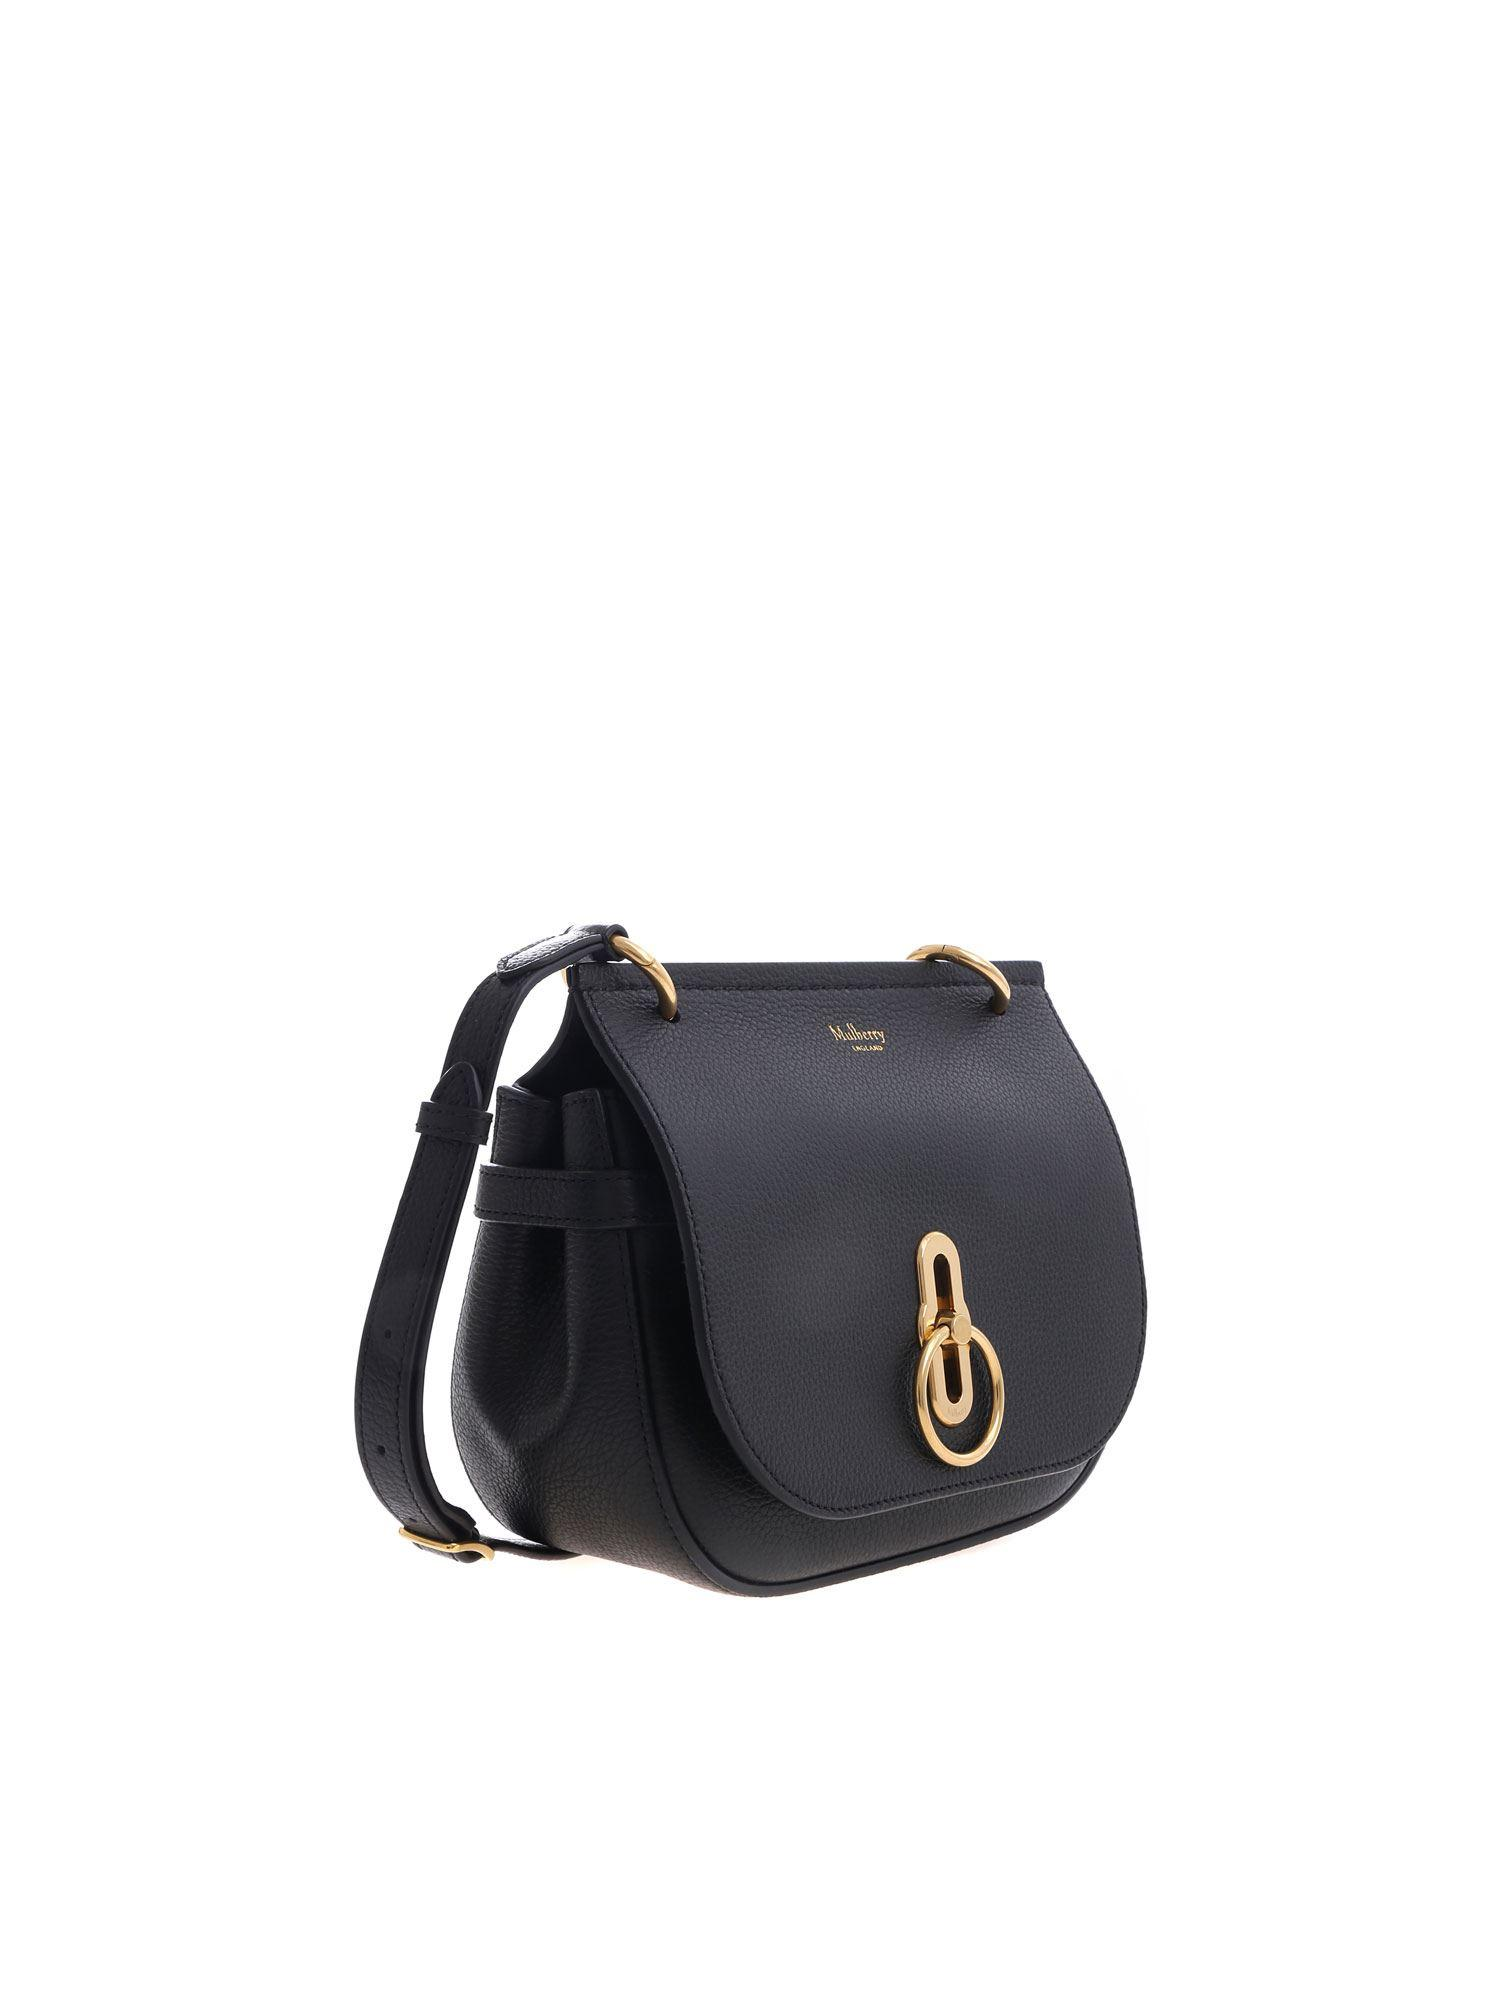 a9f8373bb1bf Mulberry - Amberley Satchel Small Black Bag - Lyst. View fullscreen